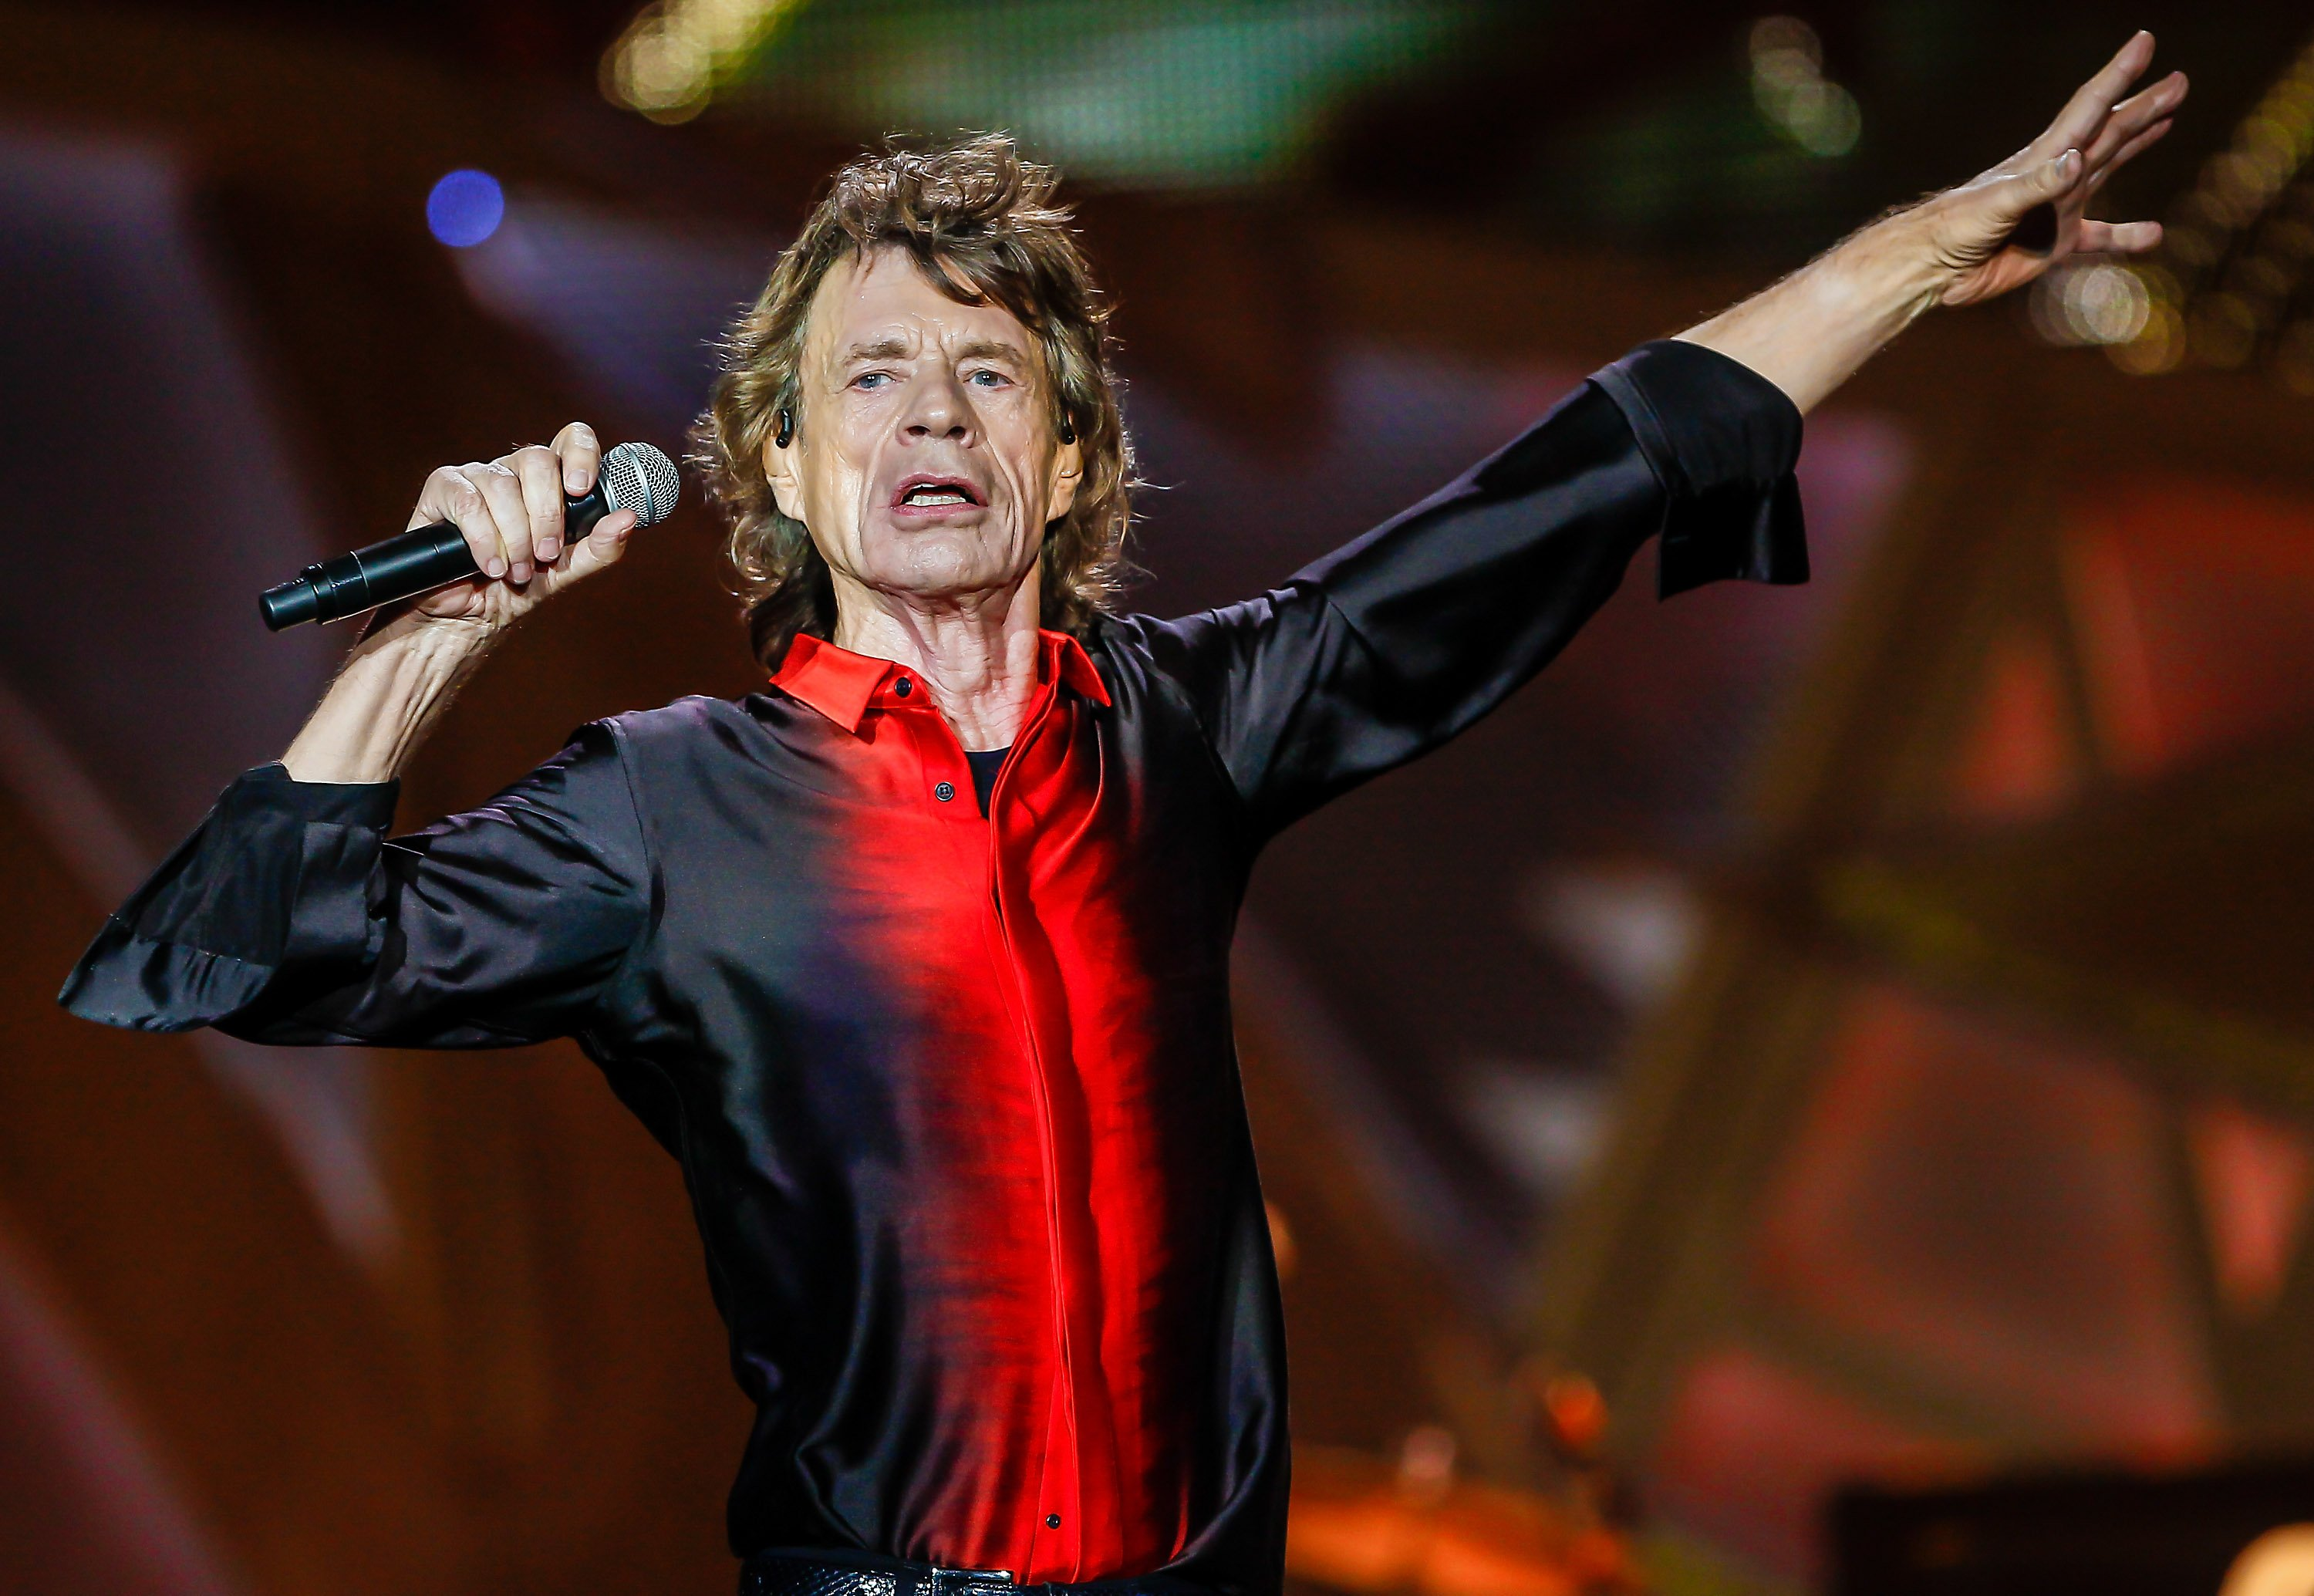 Mick Jagger of the Rolling Stones performs at the Indianapolis Motor Speedway on July 4, 2015 in Indianapolis, Indiana. | Photo by Michael Hickey/Getty Images